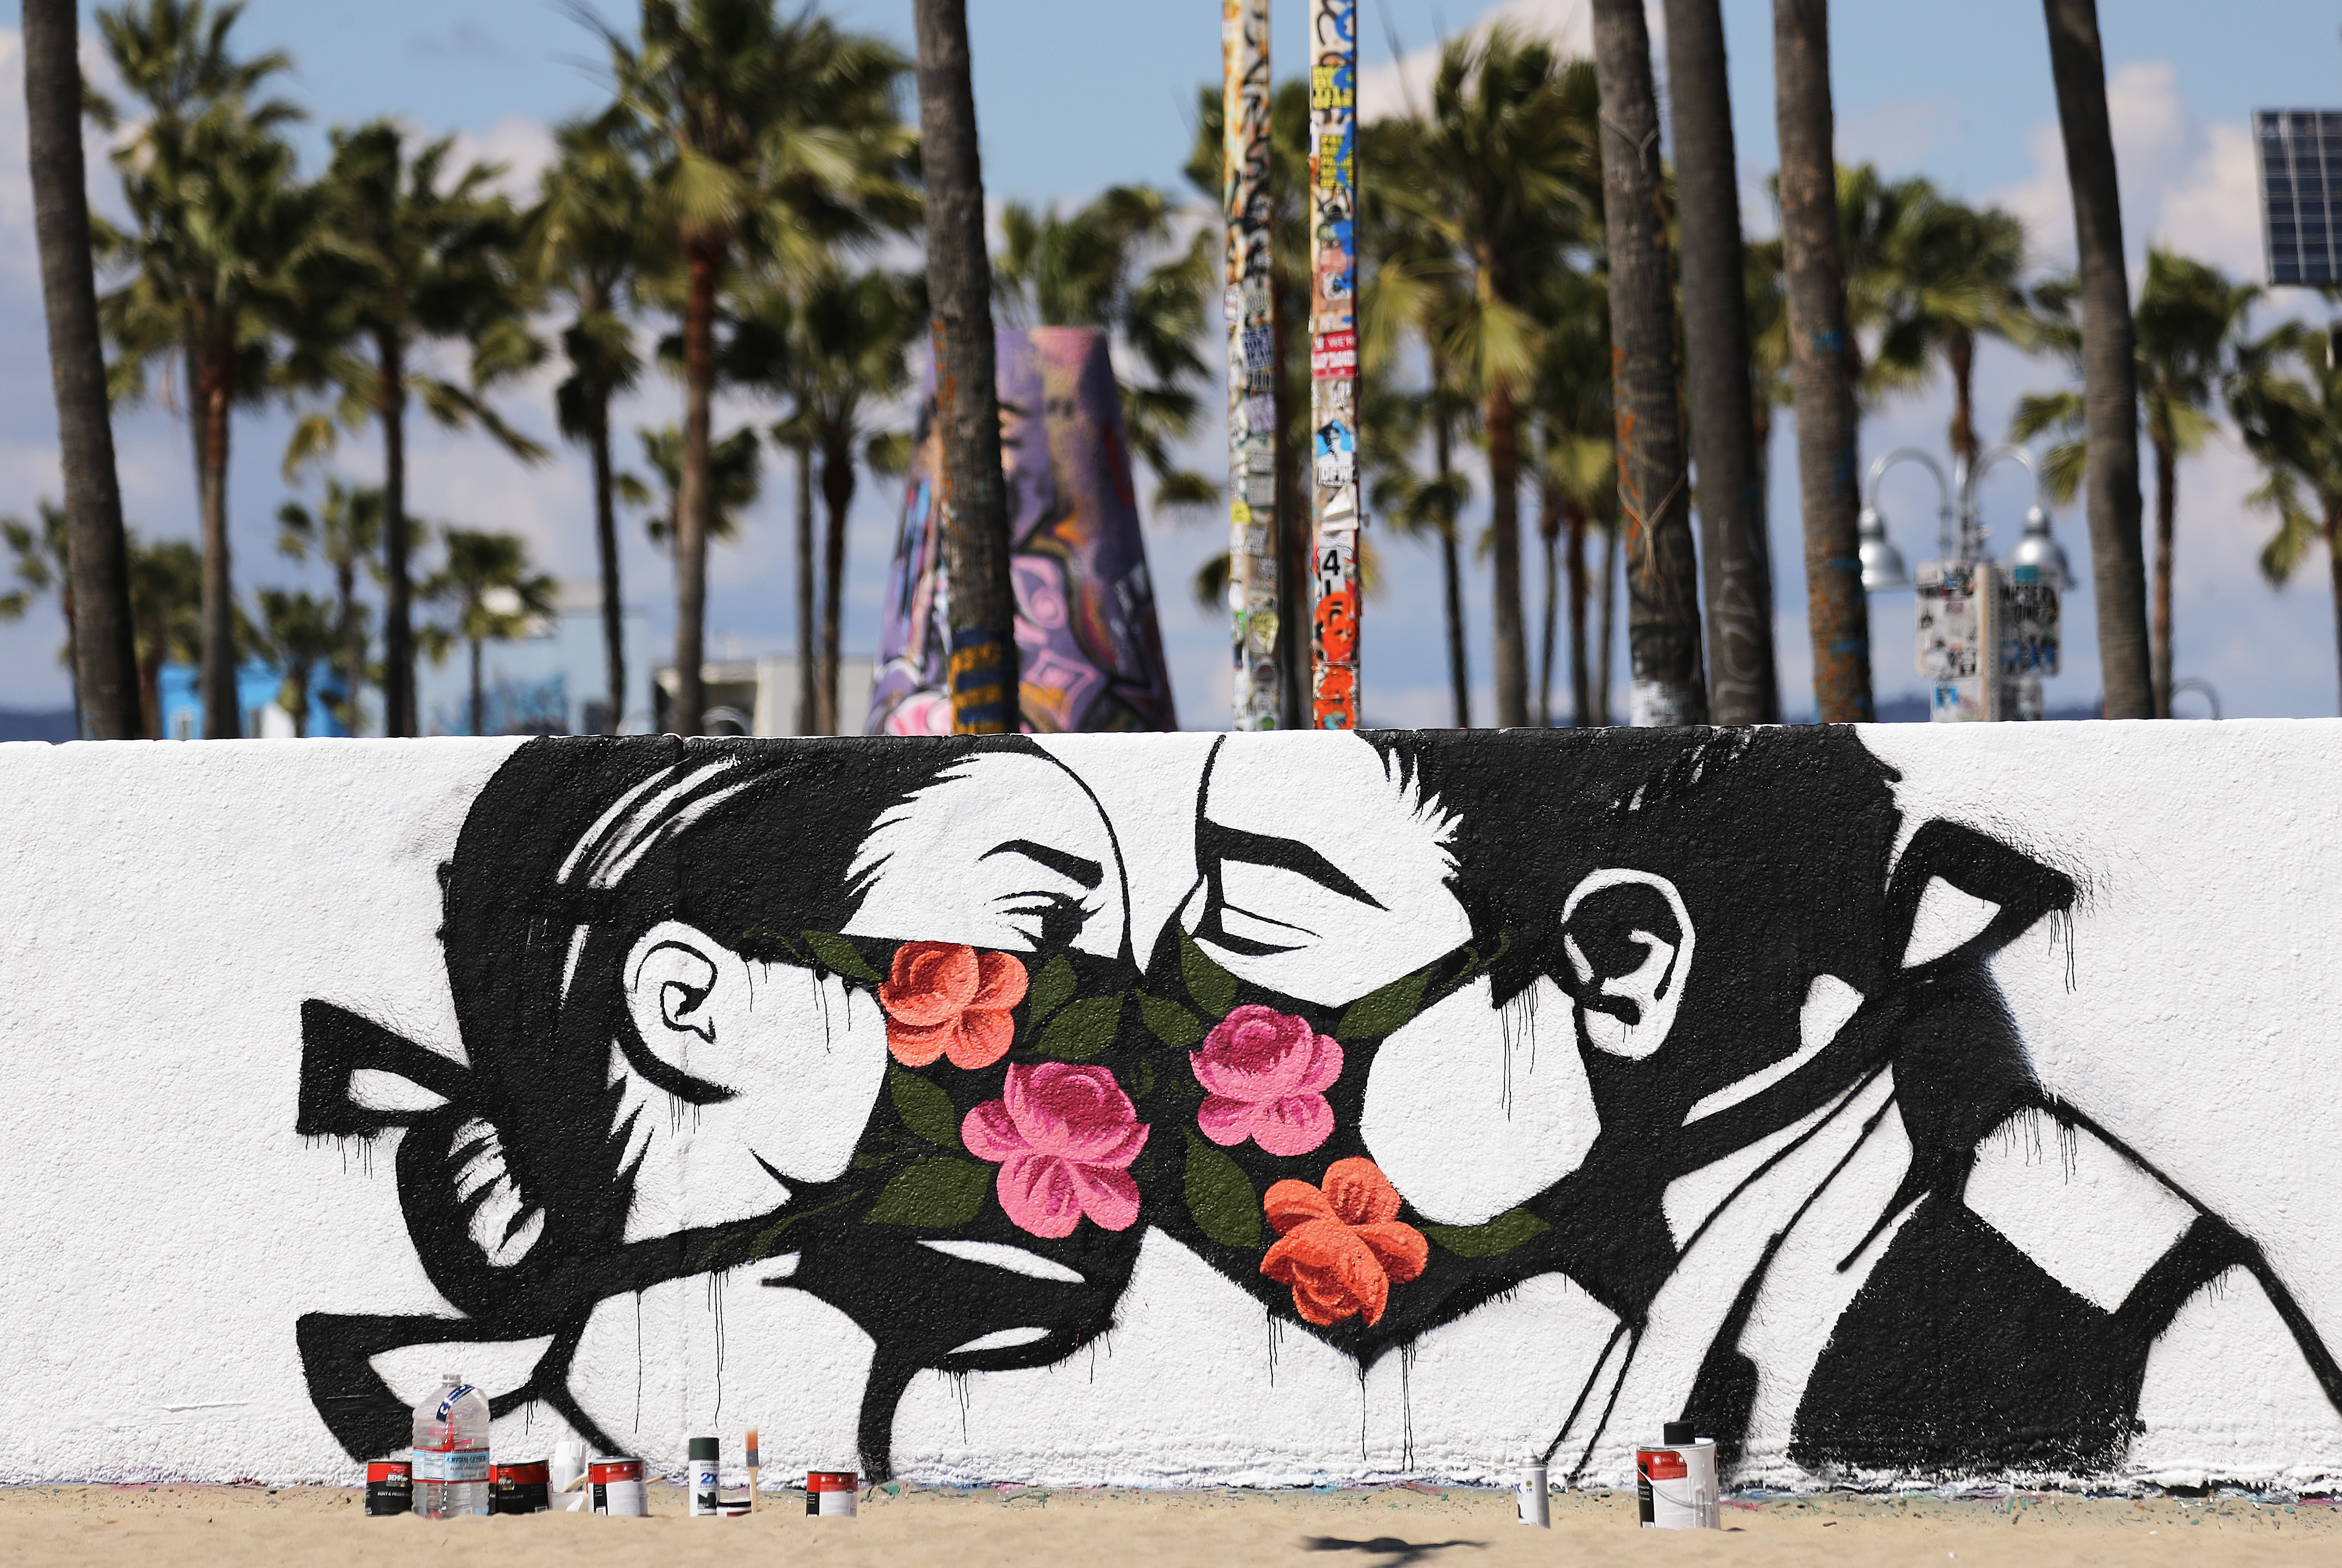 Palm trees stand behind a street art piece by artist Pony Wave depicting two people kissing while wearing face masks on Venice Beach on March 21, 2020 in Venice, California. (Photo by Mario Tama/Getty Images)